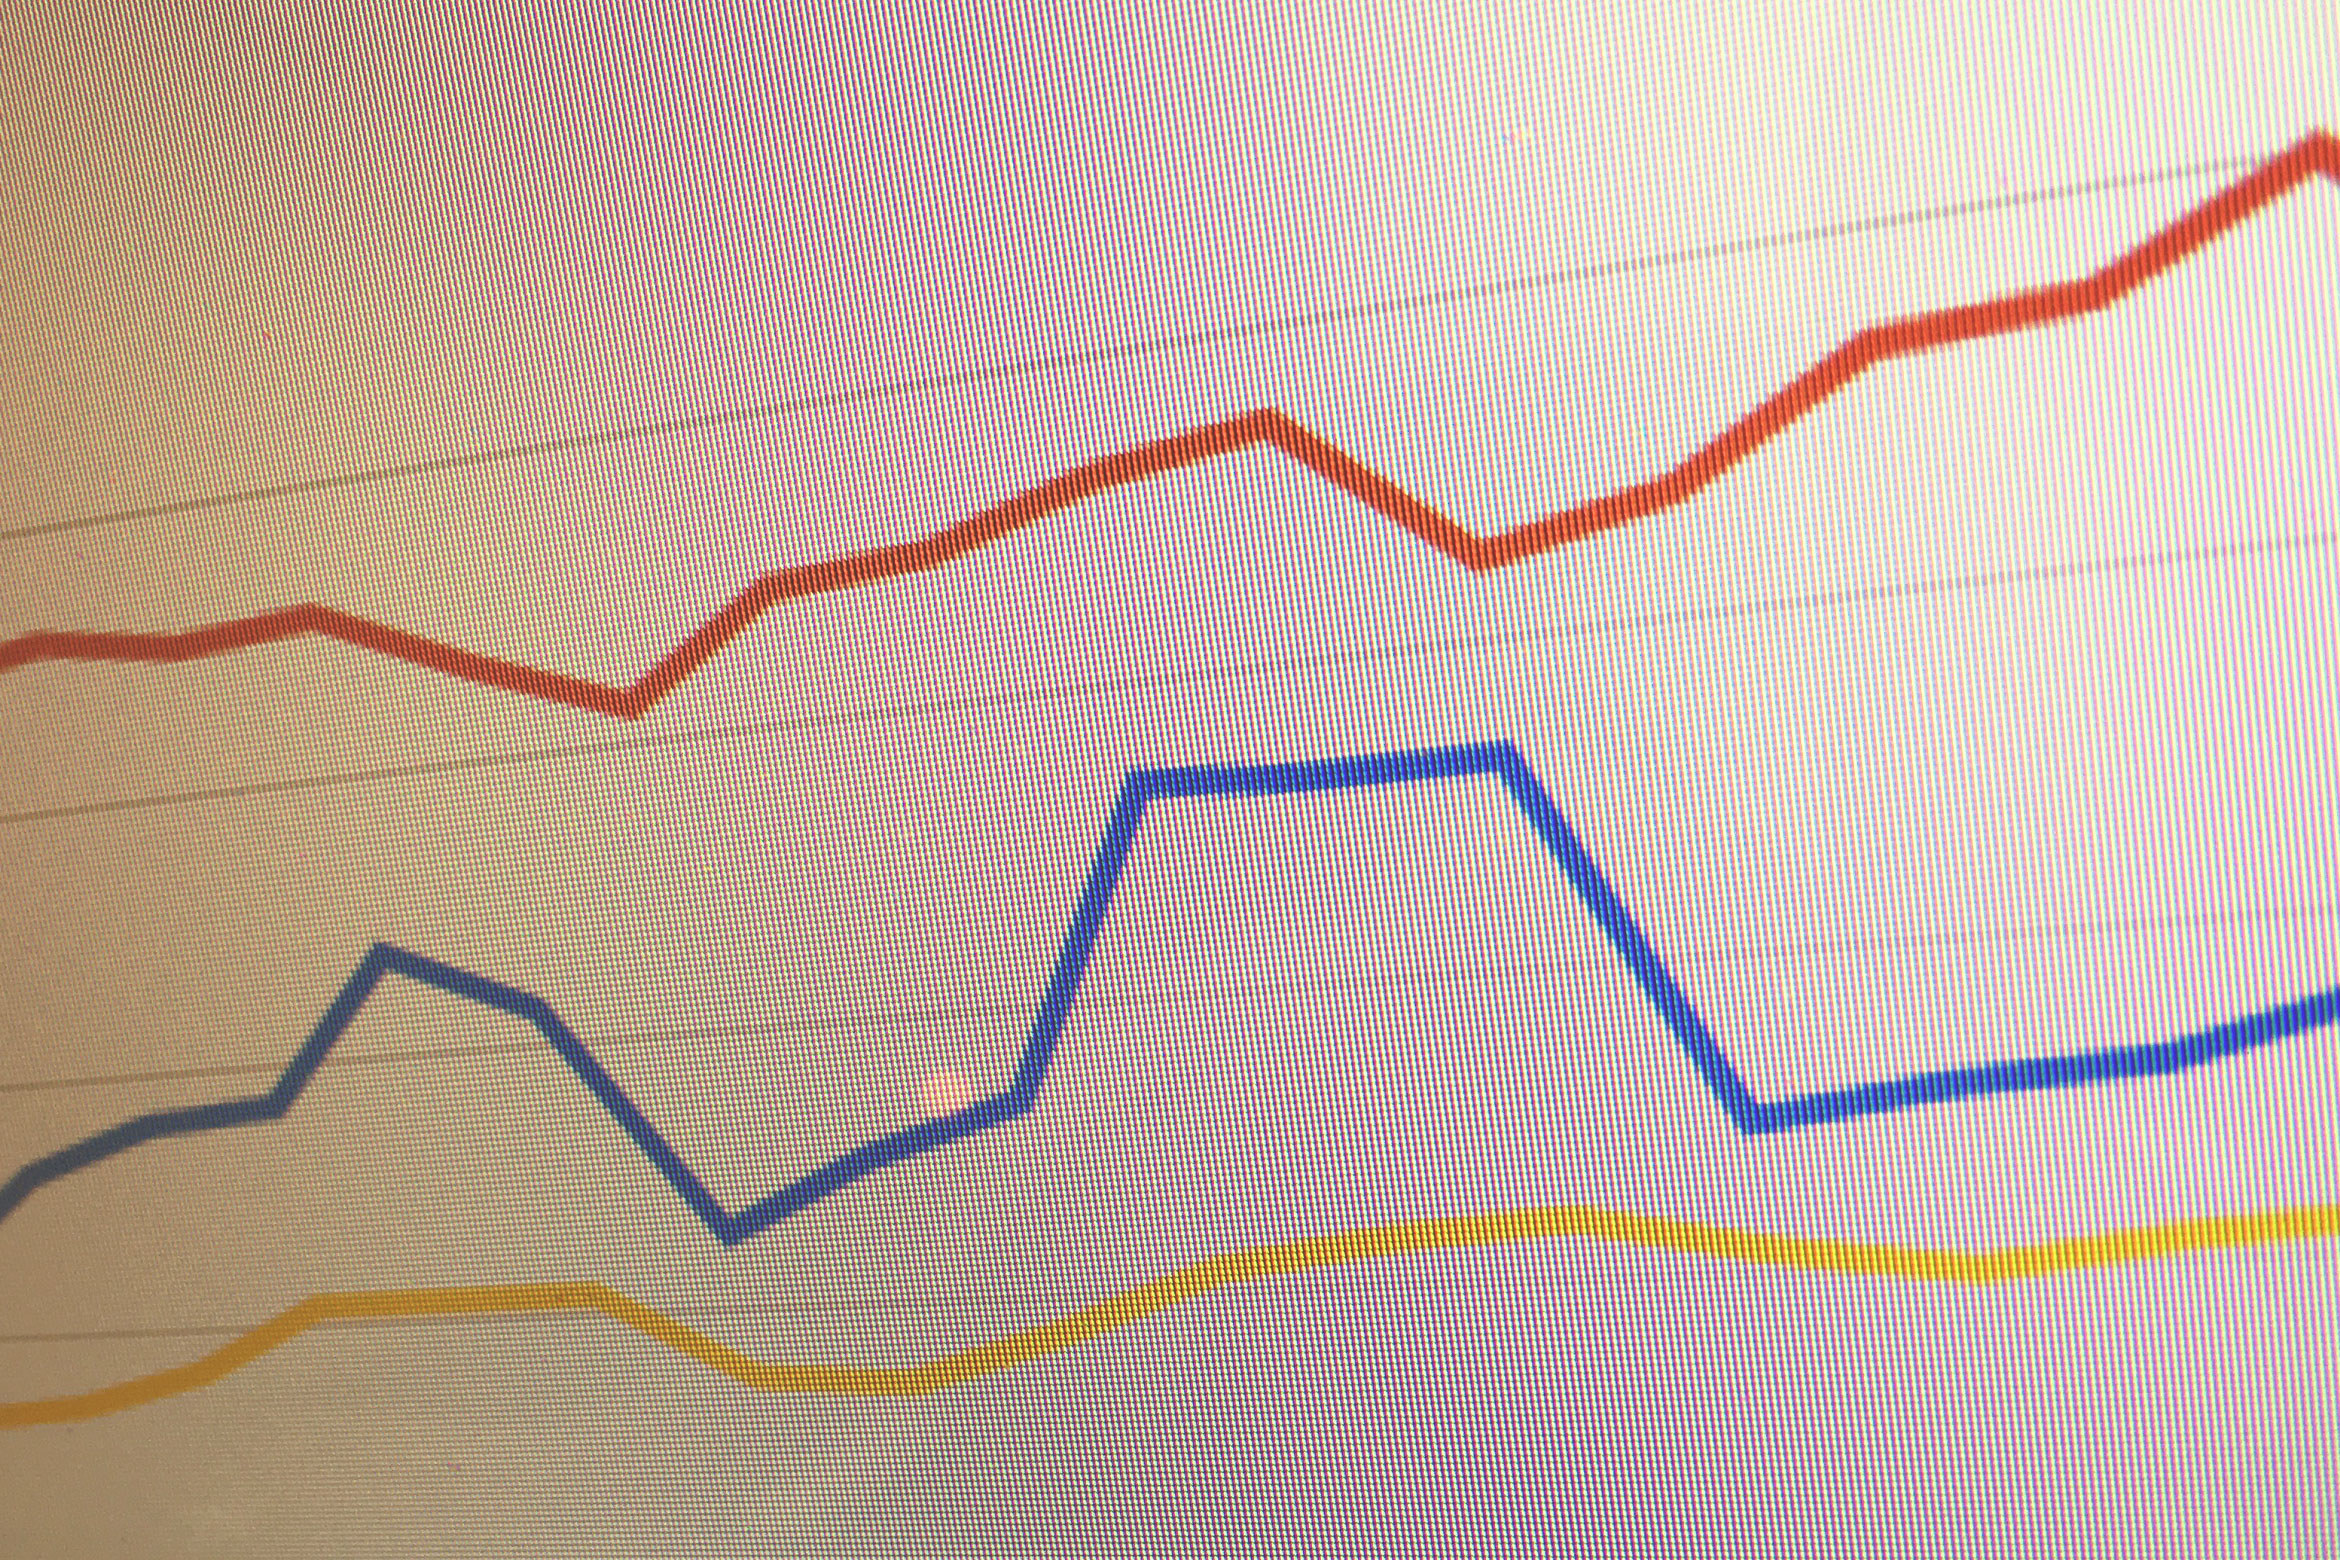 Add Google Trends to Your Sermon and Lesson Prep